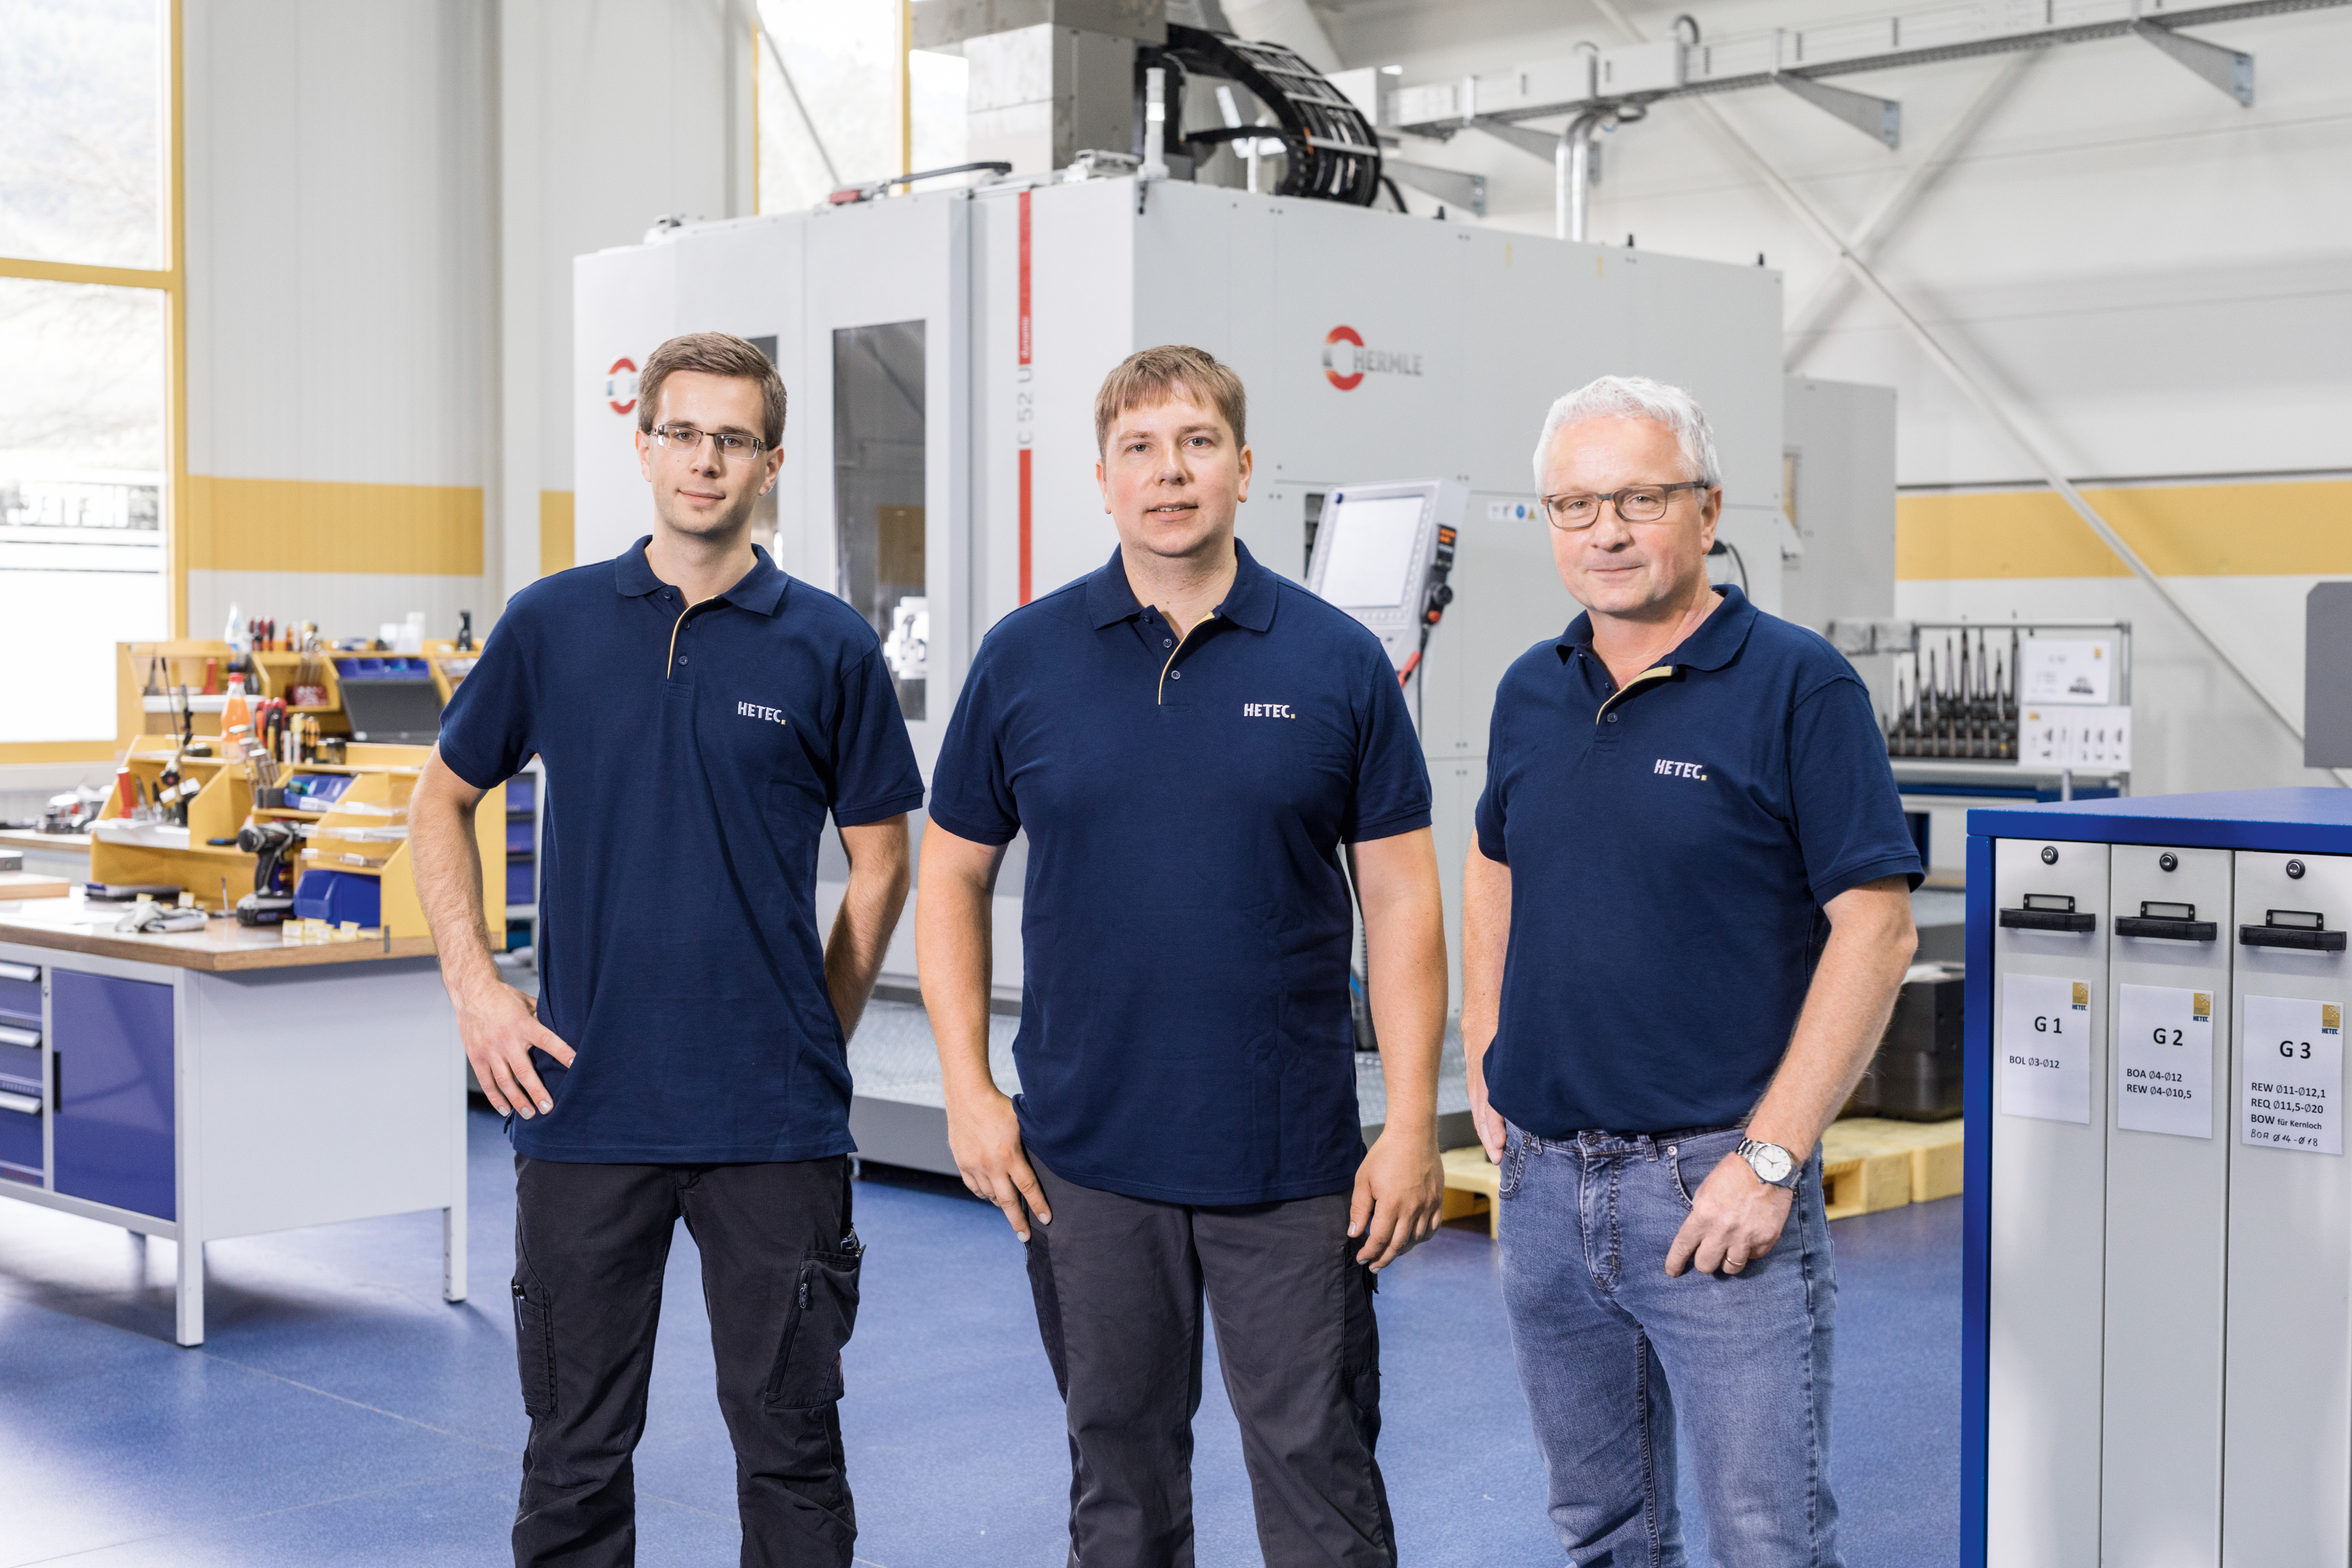 from right to left side Friedhelm Herhaus, Managing Director, Christoph Schneider, Group Leader Milling Technology, and Tom Herhaus, Applications Engineering/Operator, all from machining service provider HETEC GmbH